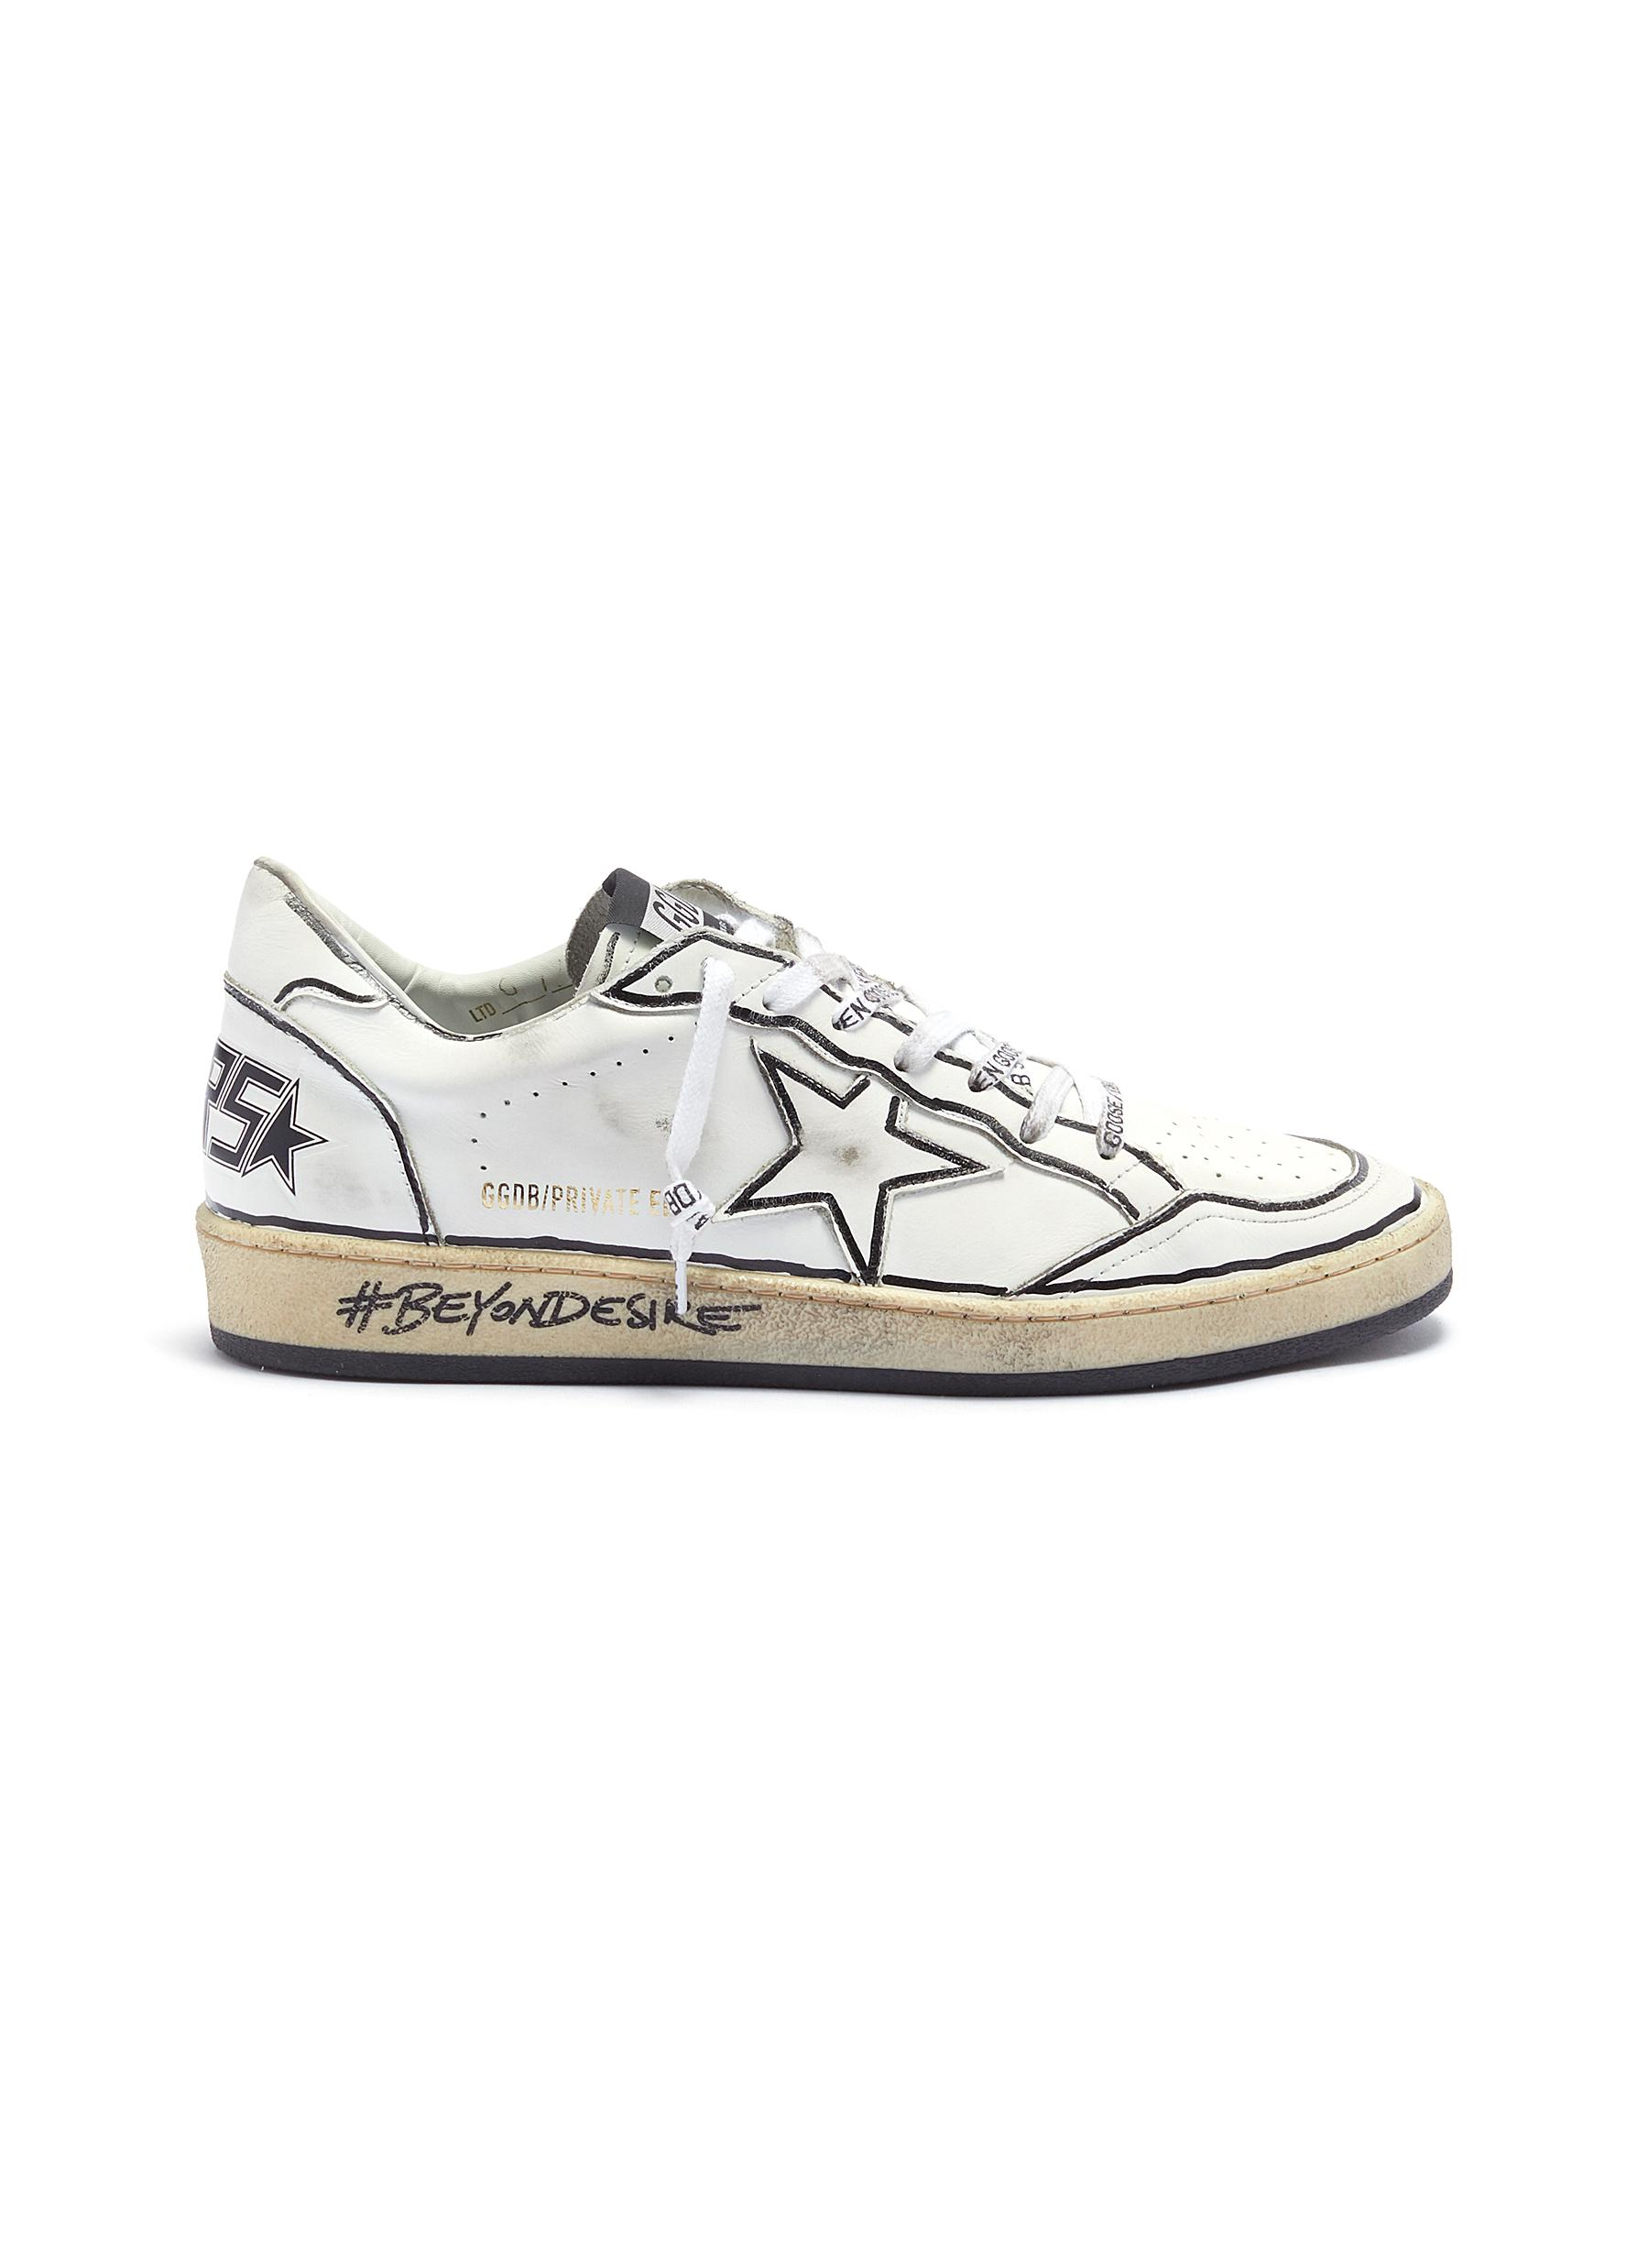 Slogan print midsole leather sneakers by Golden Goose